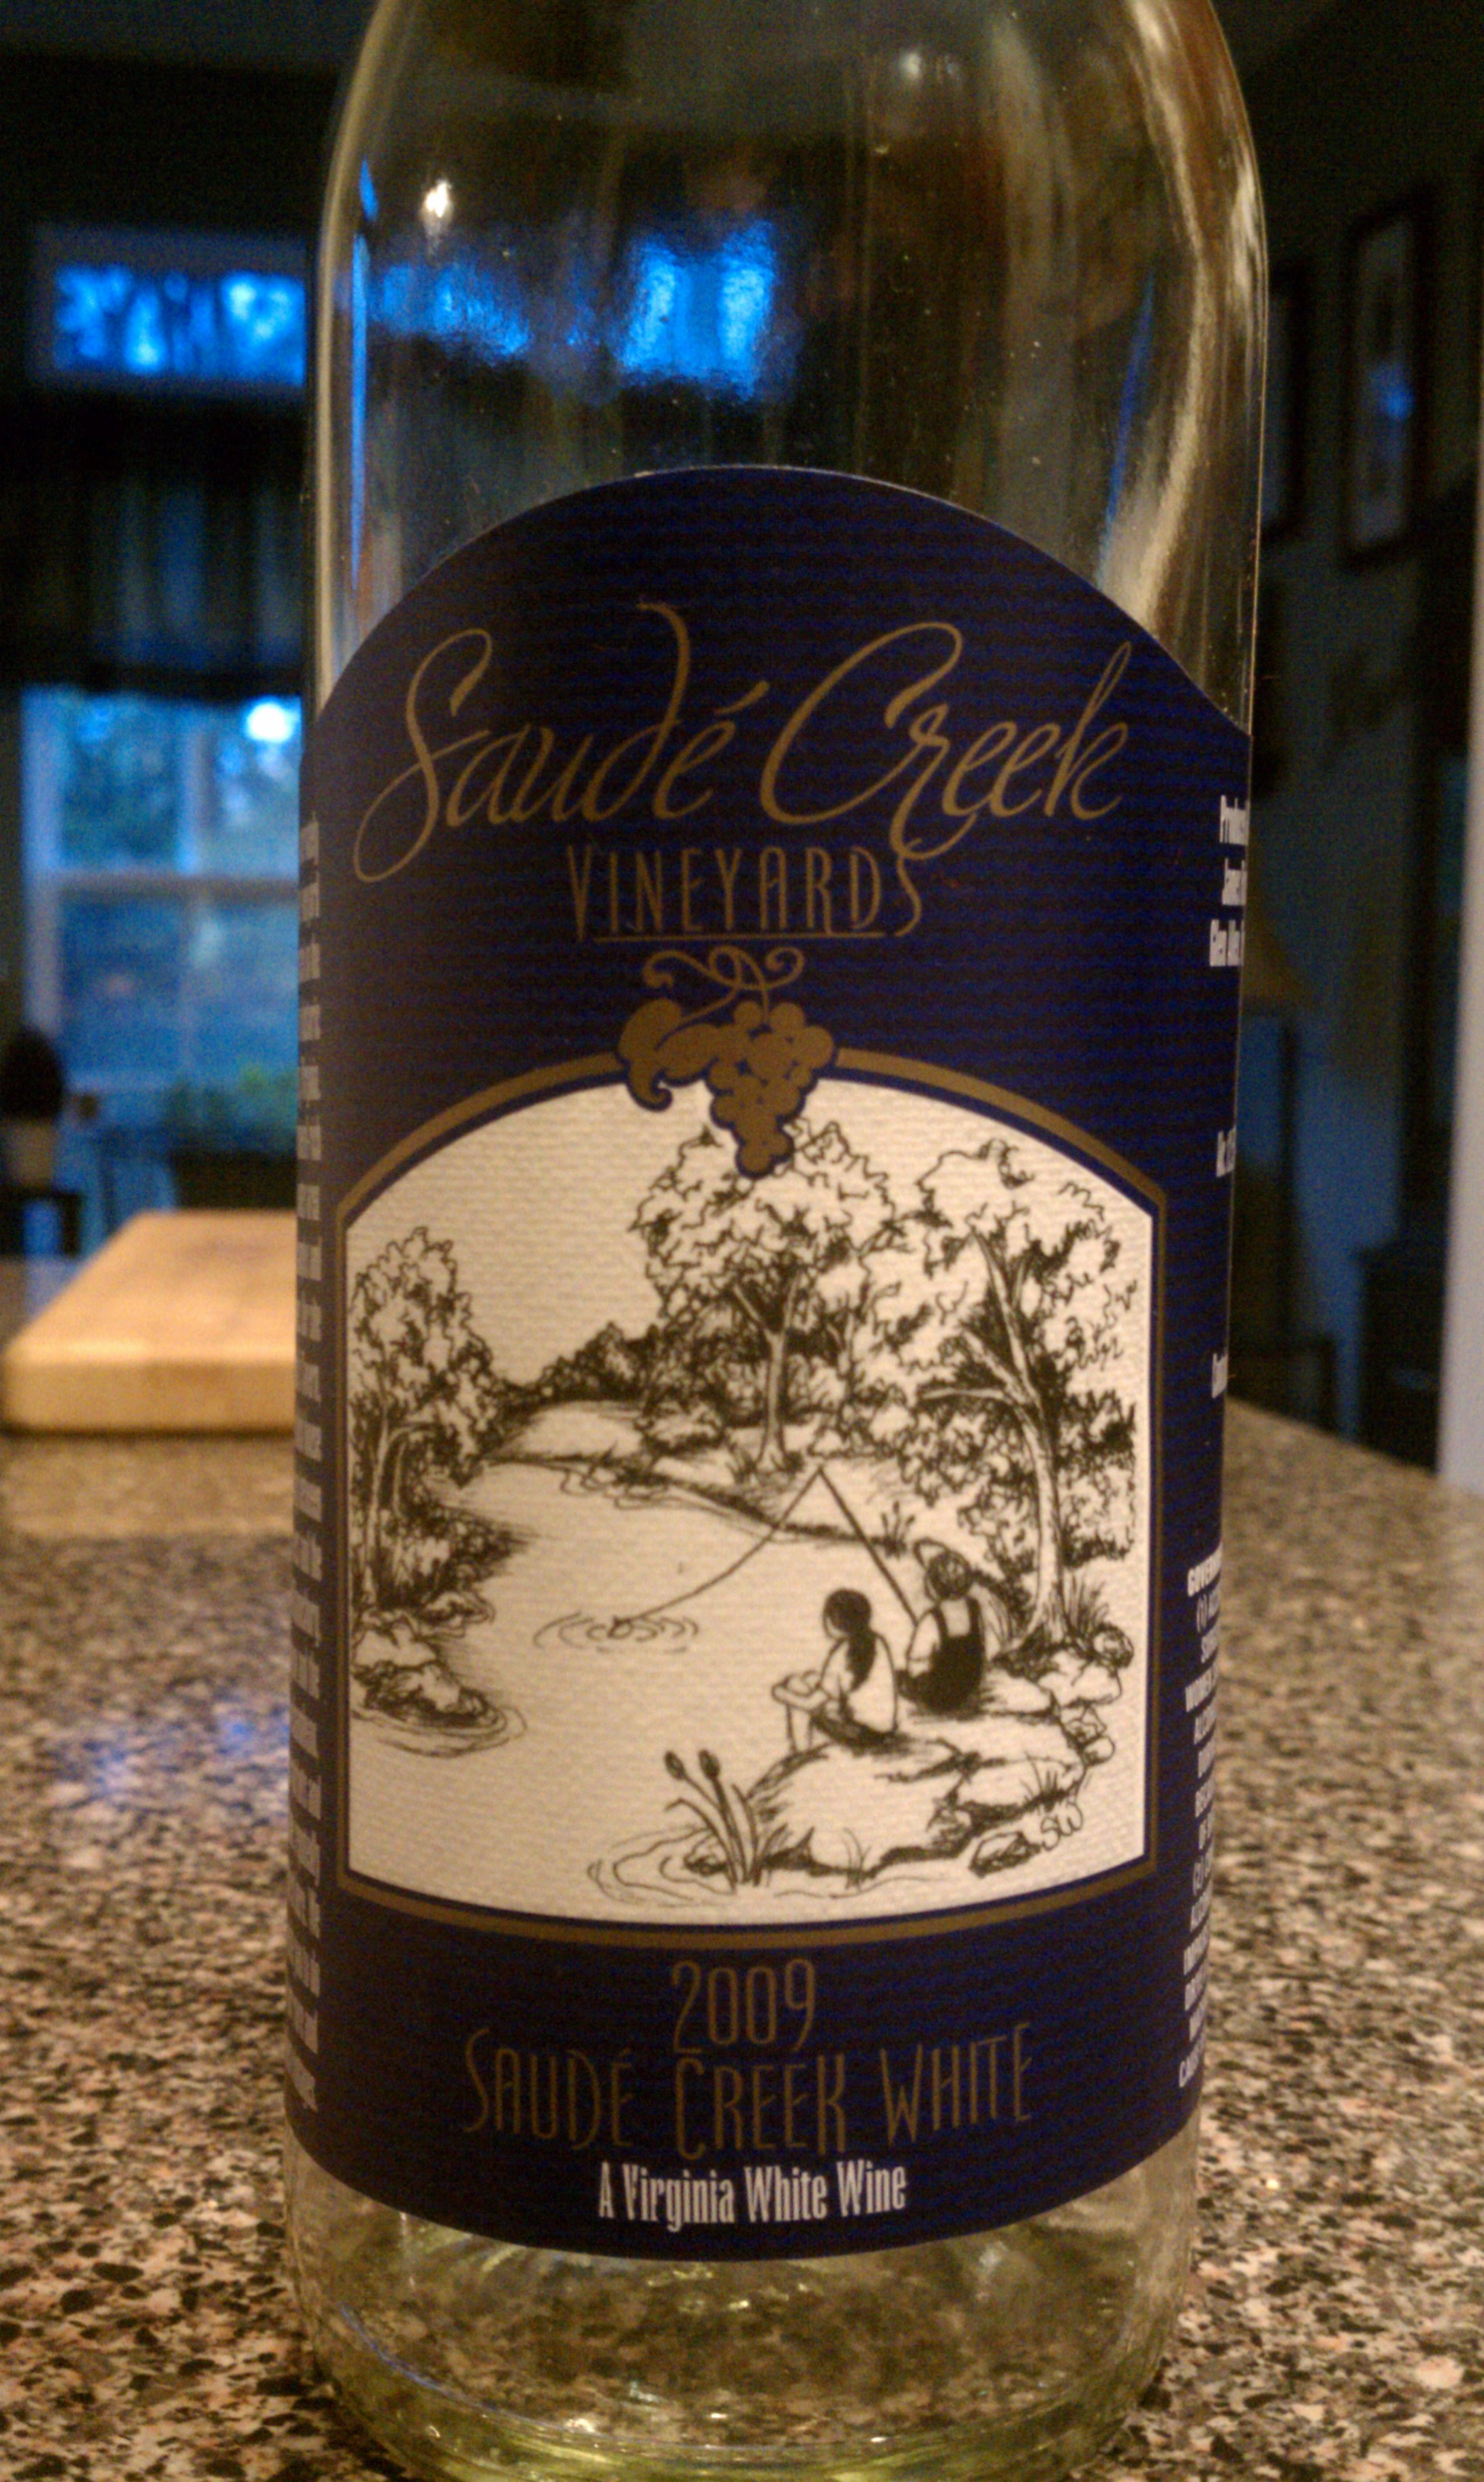 2009 Saude Creek White Wine